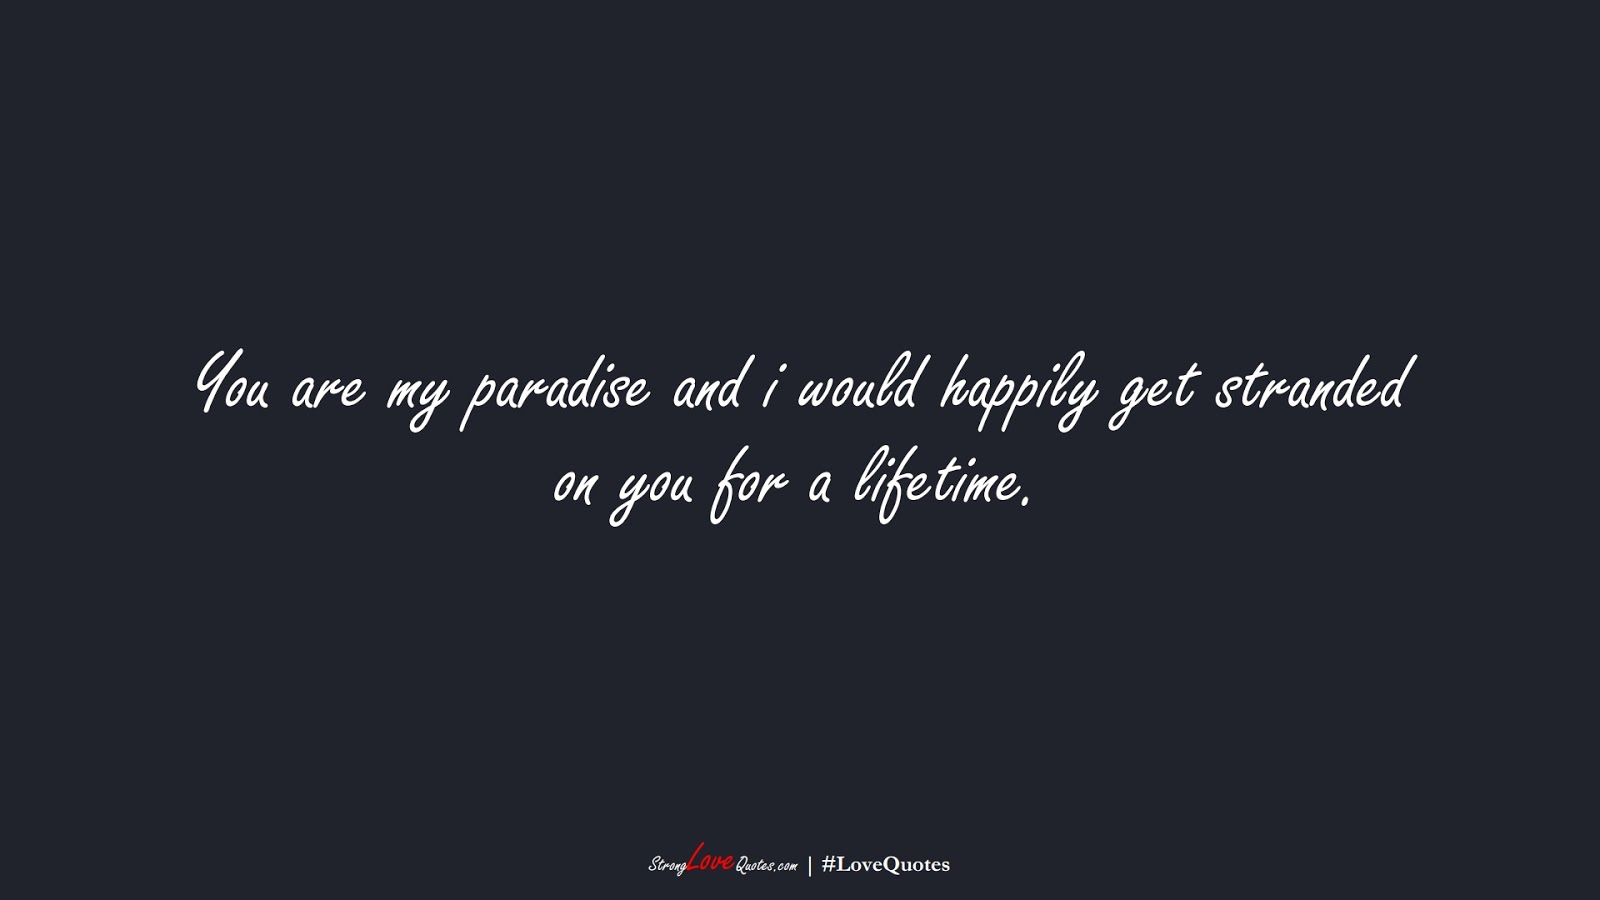 You are my paradise and i would happily get stranded on you for a lifetime.FALSE